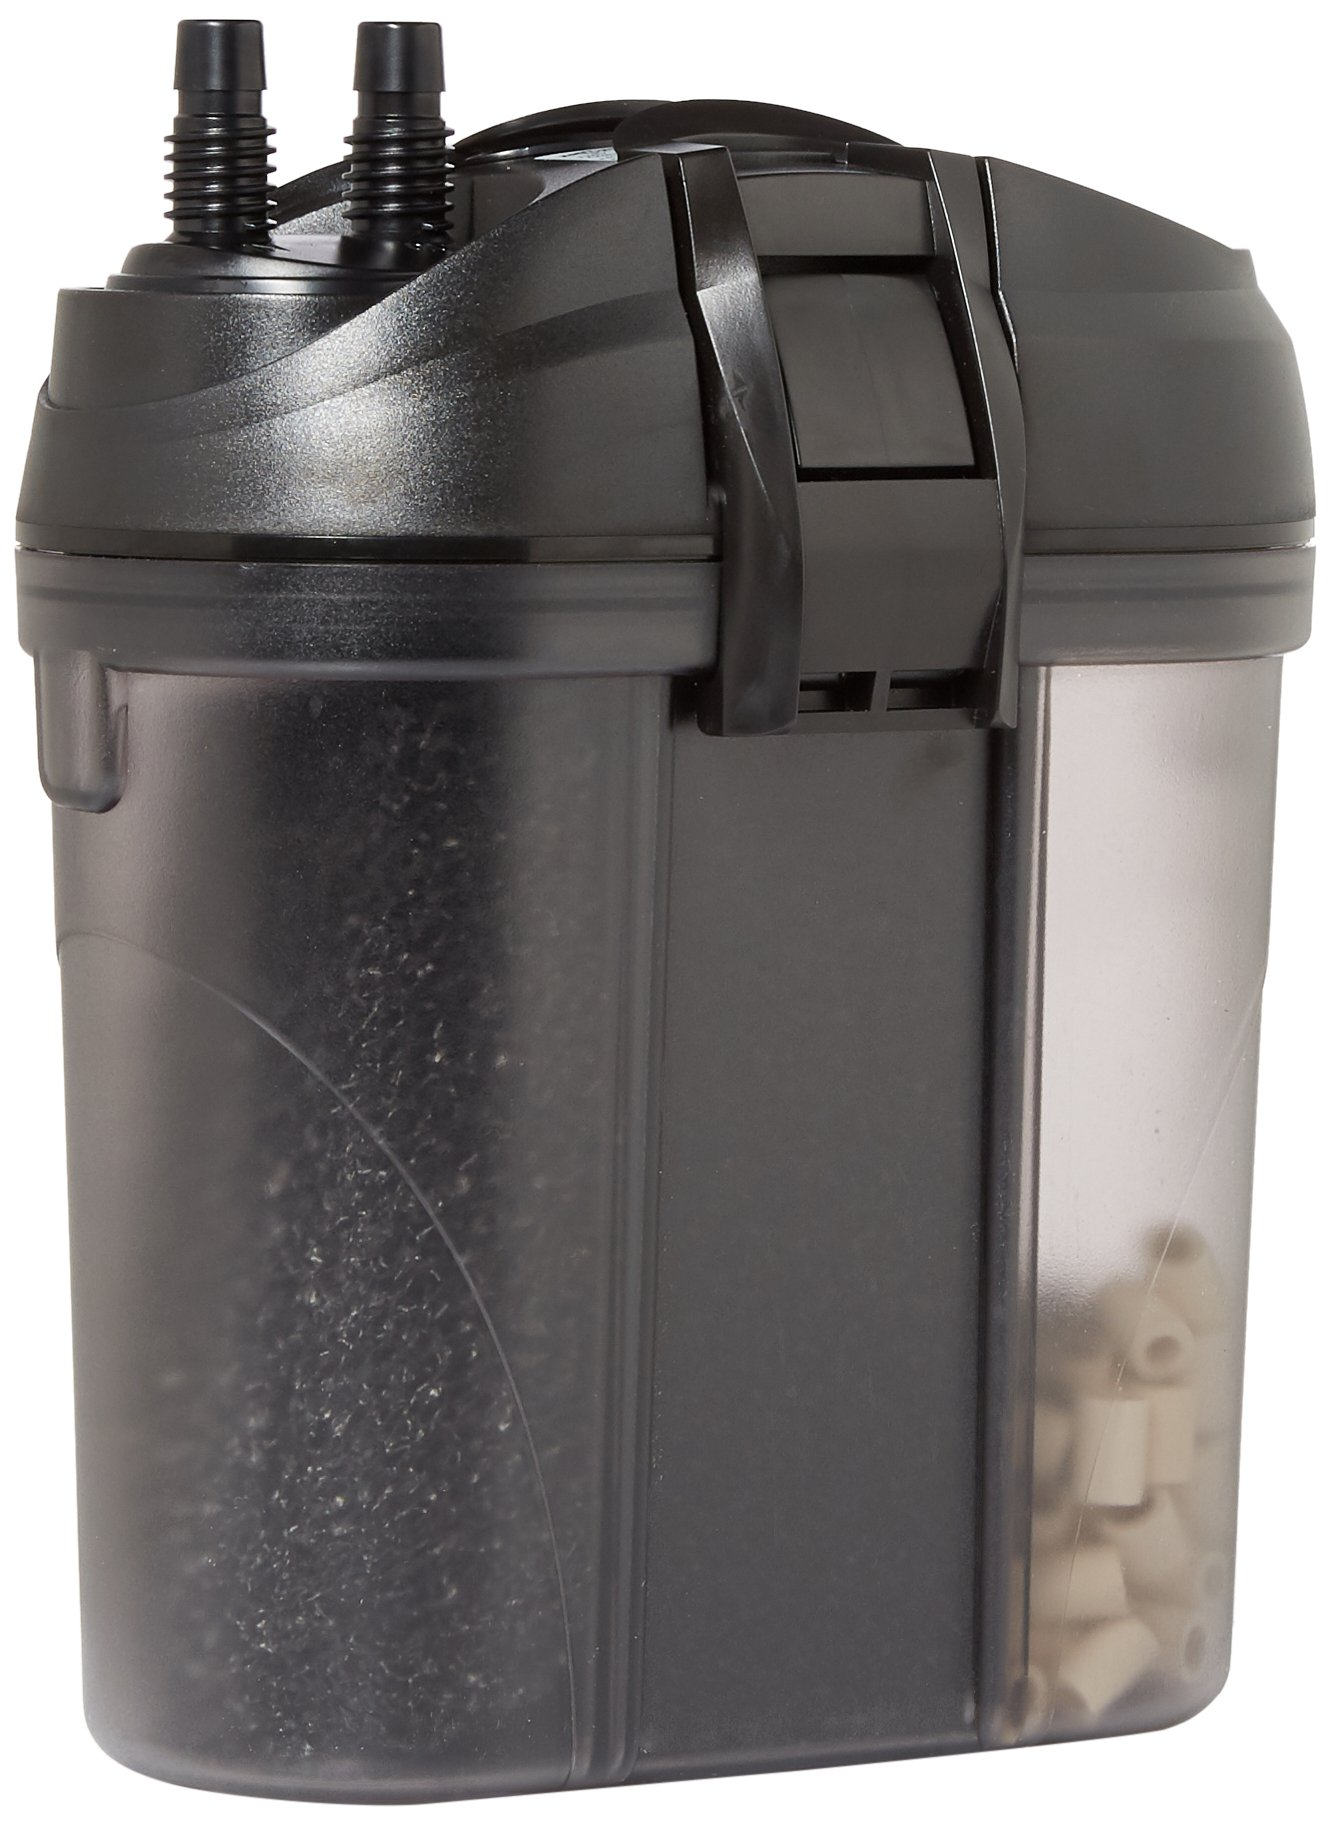 ZooMed Nano 30 External Canister Filter by Zoo Med